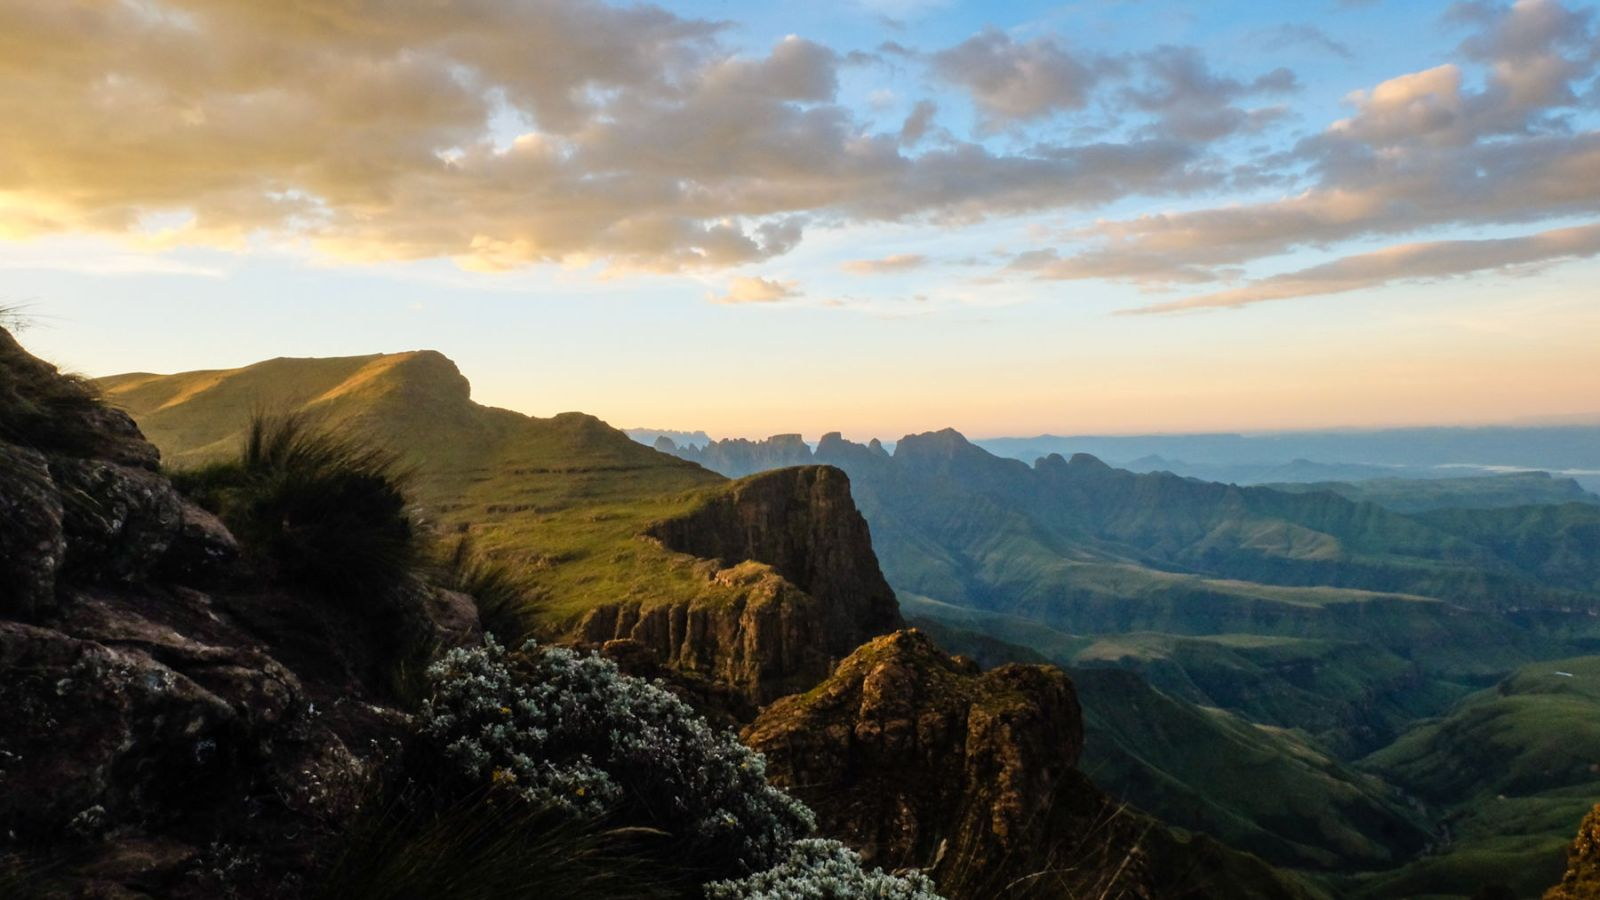 photo from the mountain plateau showing the sunset in the drakensberg mountains